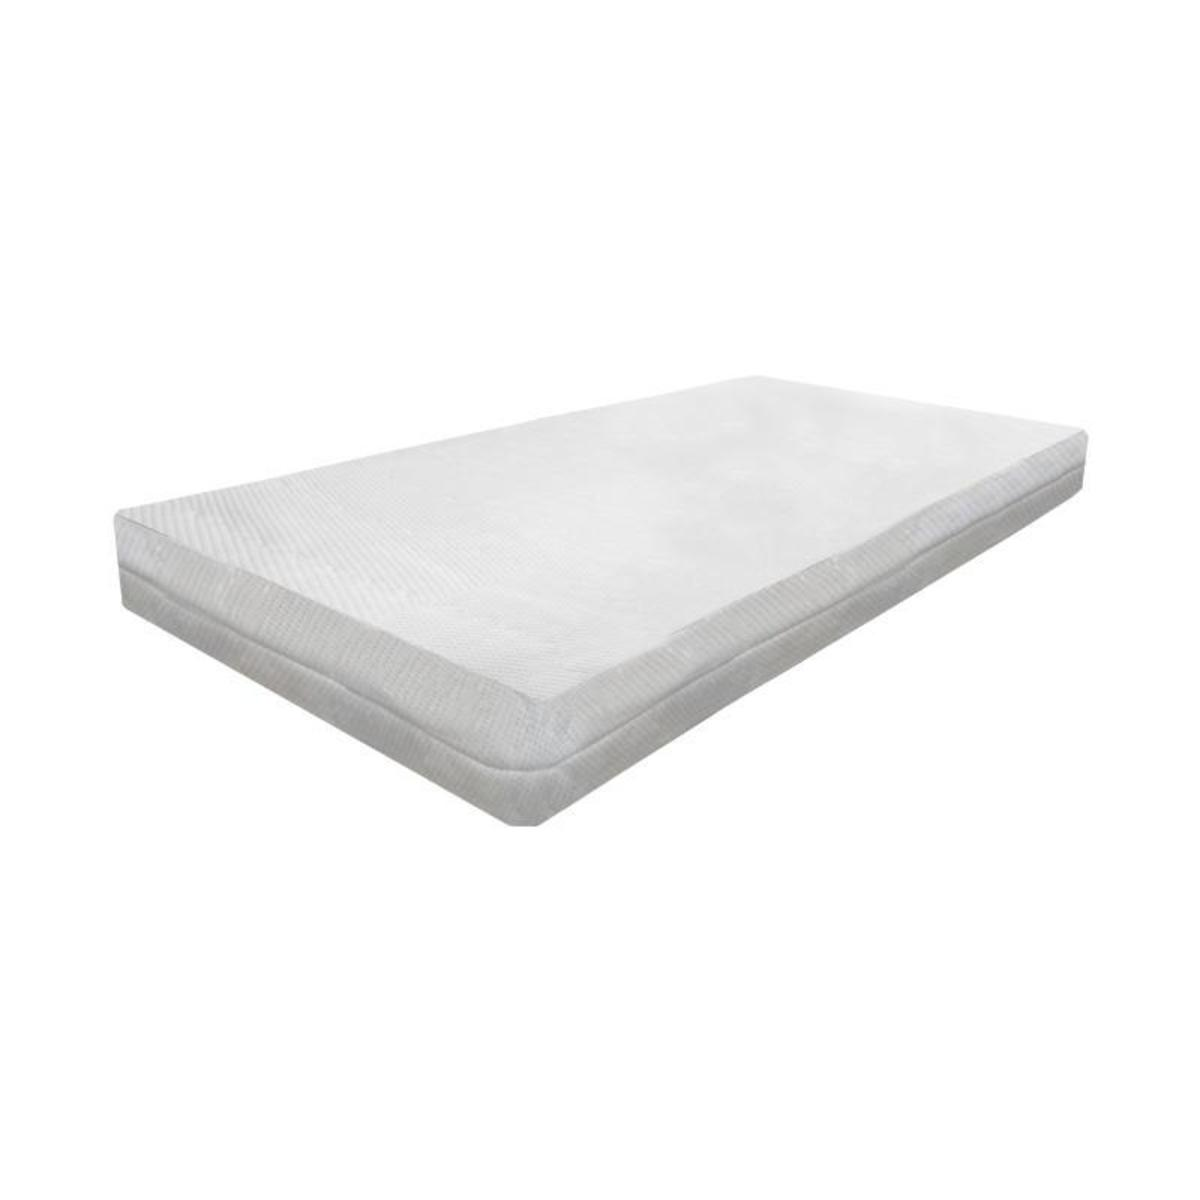 0/3 Baby double-sided ridge spring bed mattress (0-4 years old) (3 sizes) - Large: 120 x 60 x 14cm